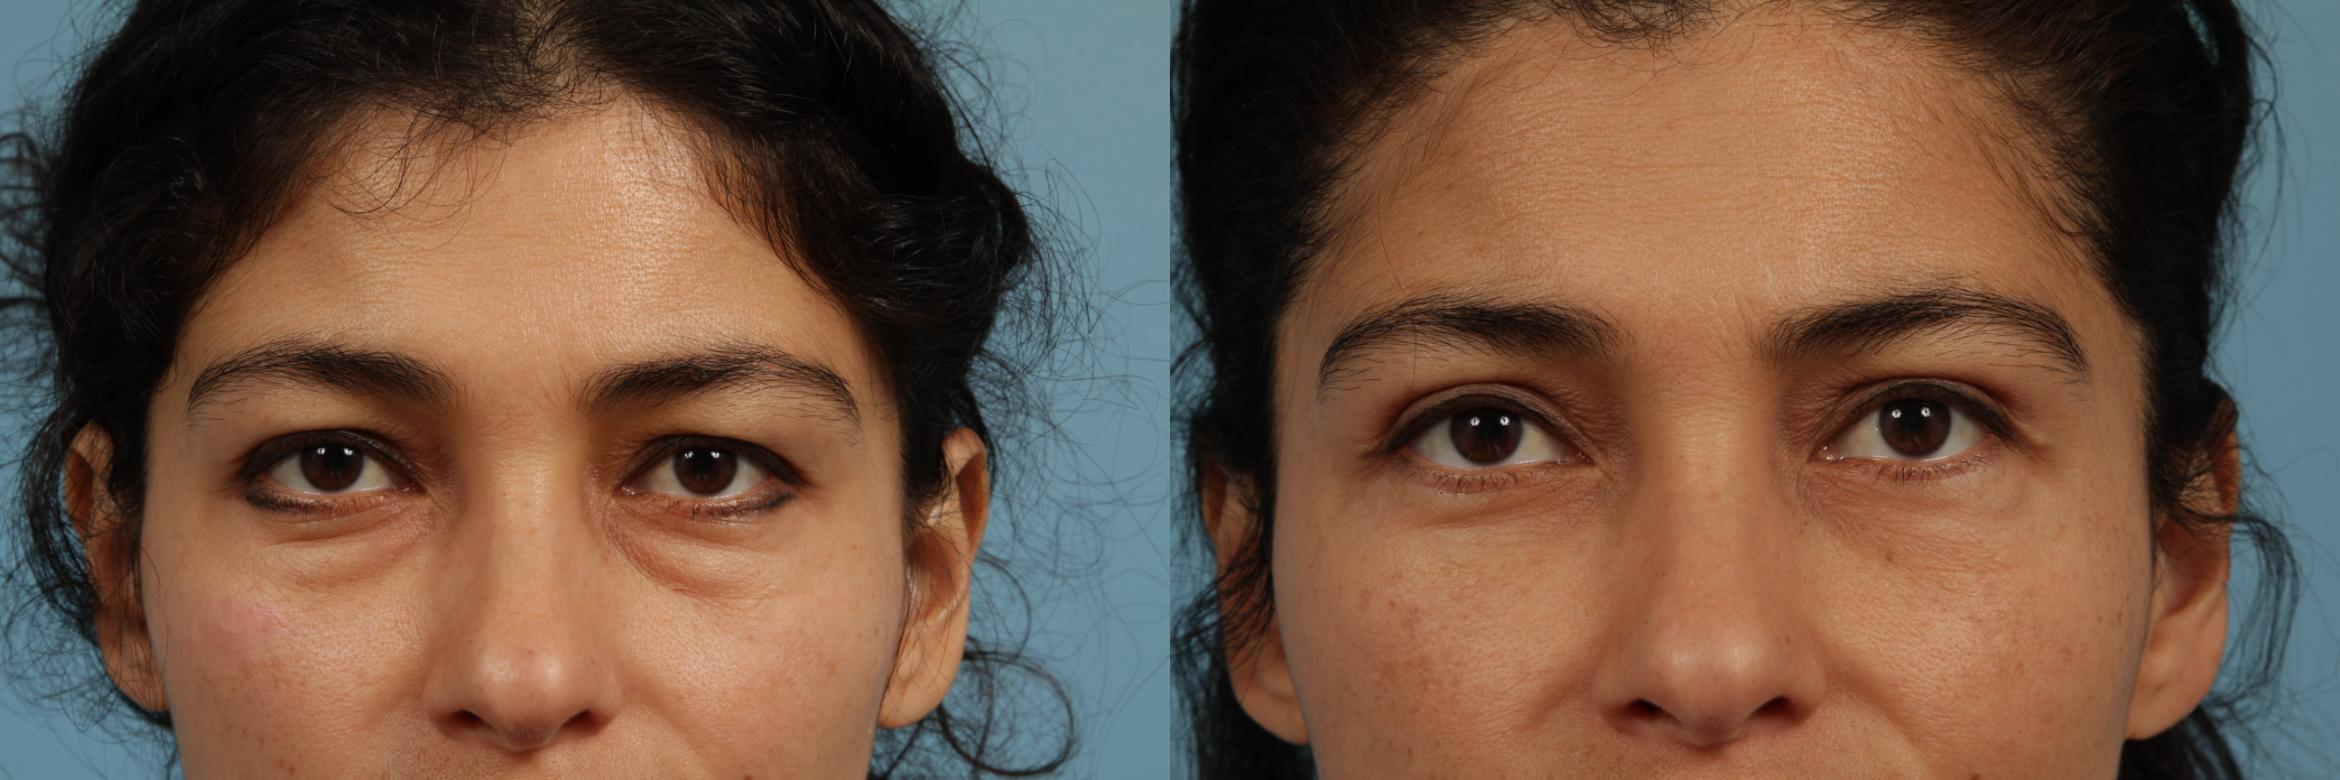 Eyelid Surgery Case 319 Before & After View #1 | Chicago, IL | TLKM Plastic Surgery